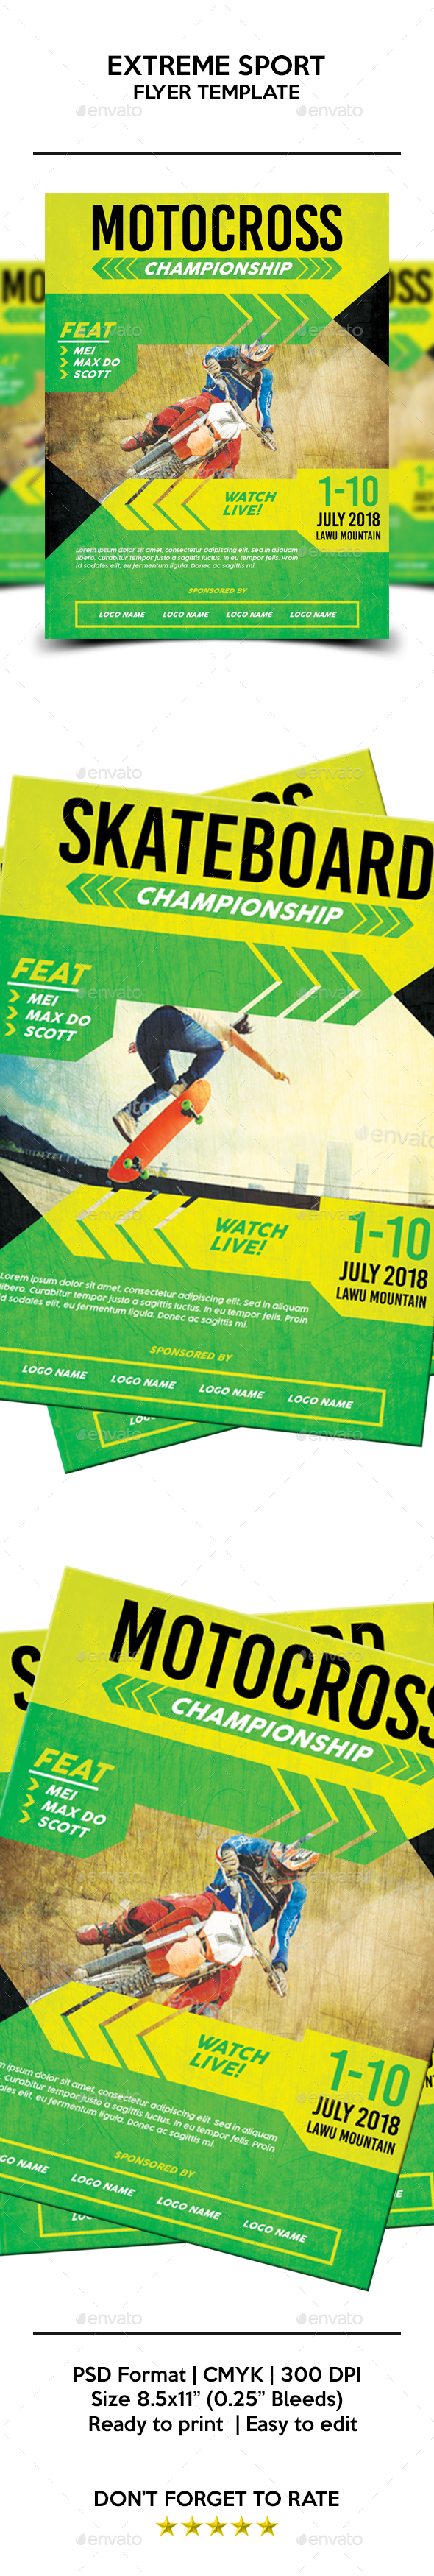 Extreme Sport Flyer Template - Sports Events